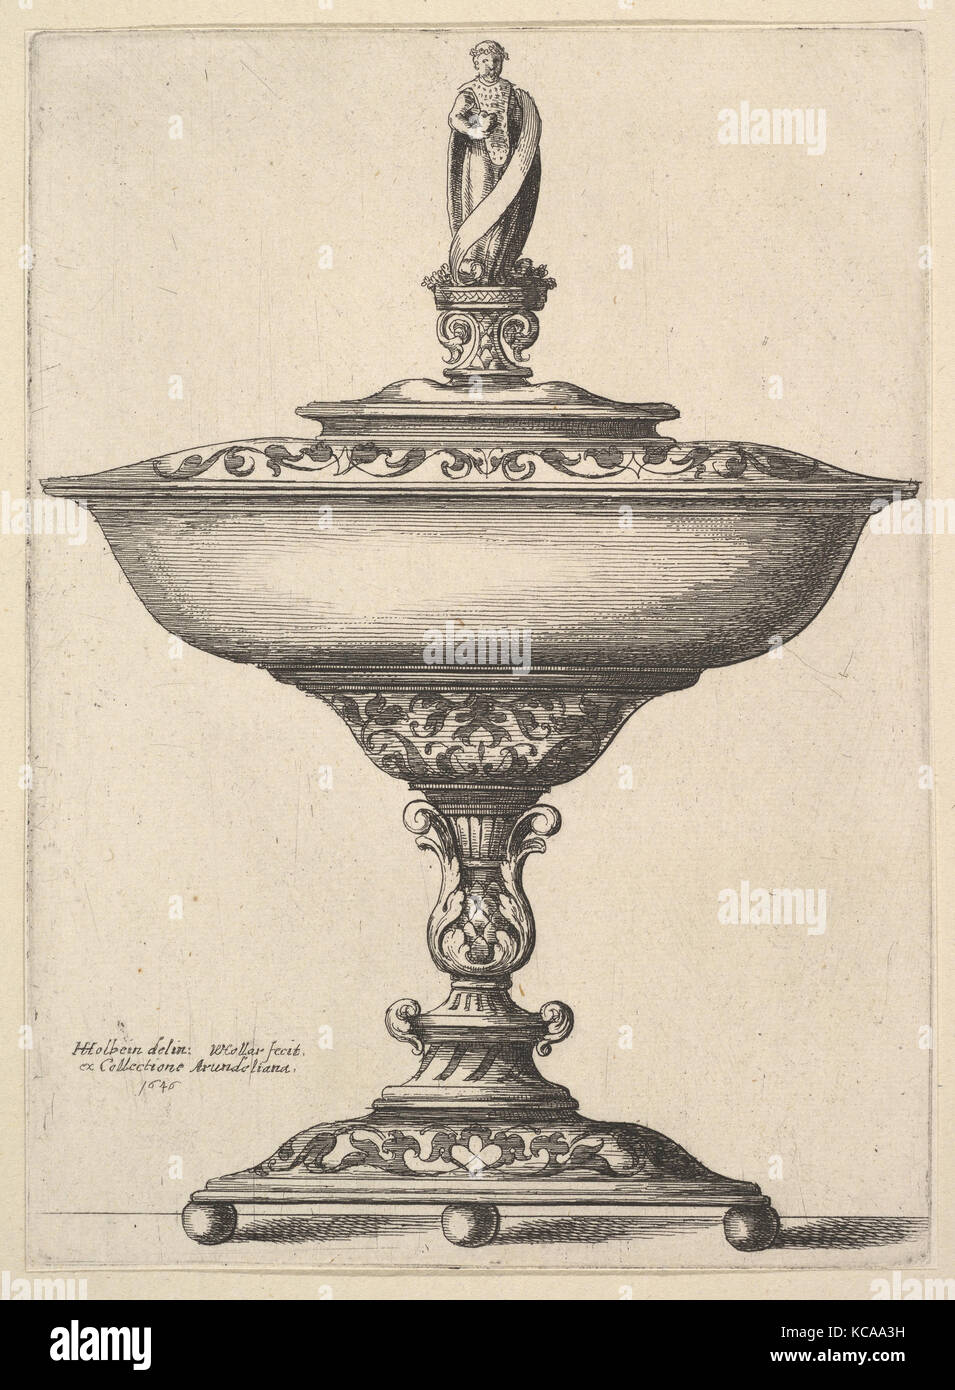 A wide cup with ball feet, 1646, Etching